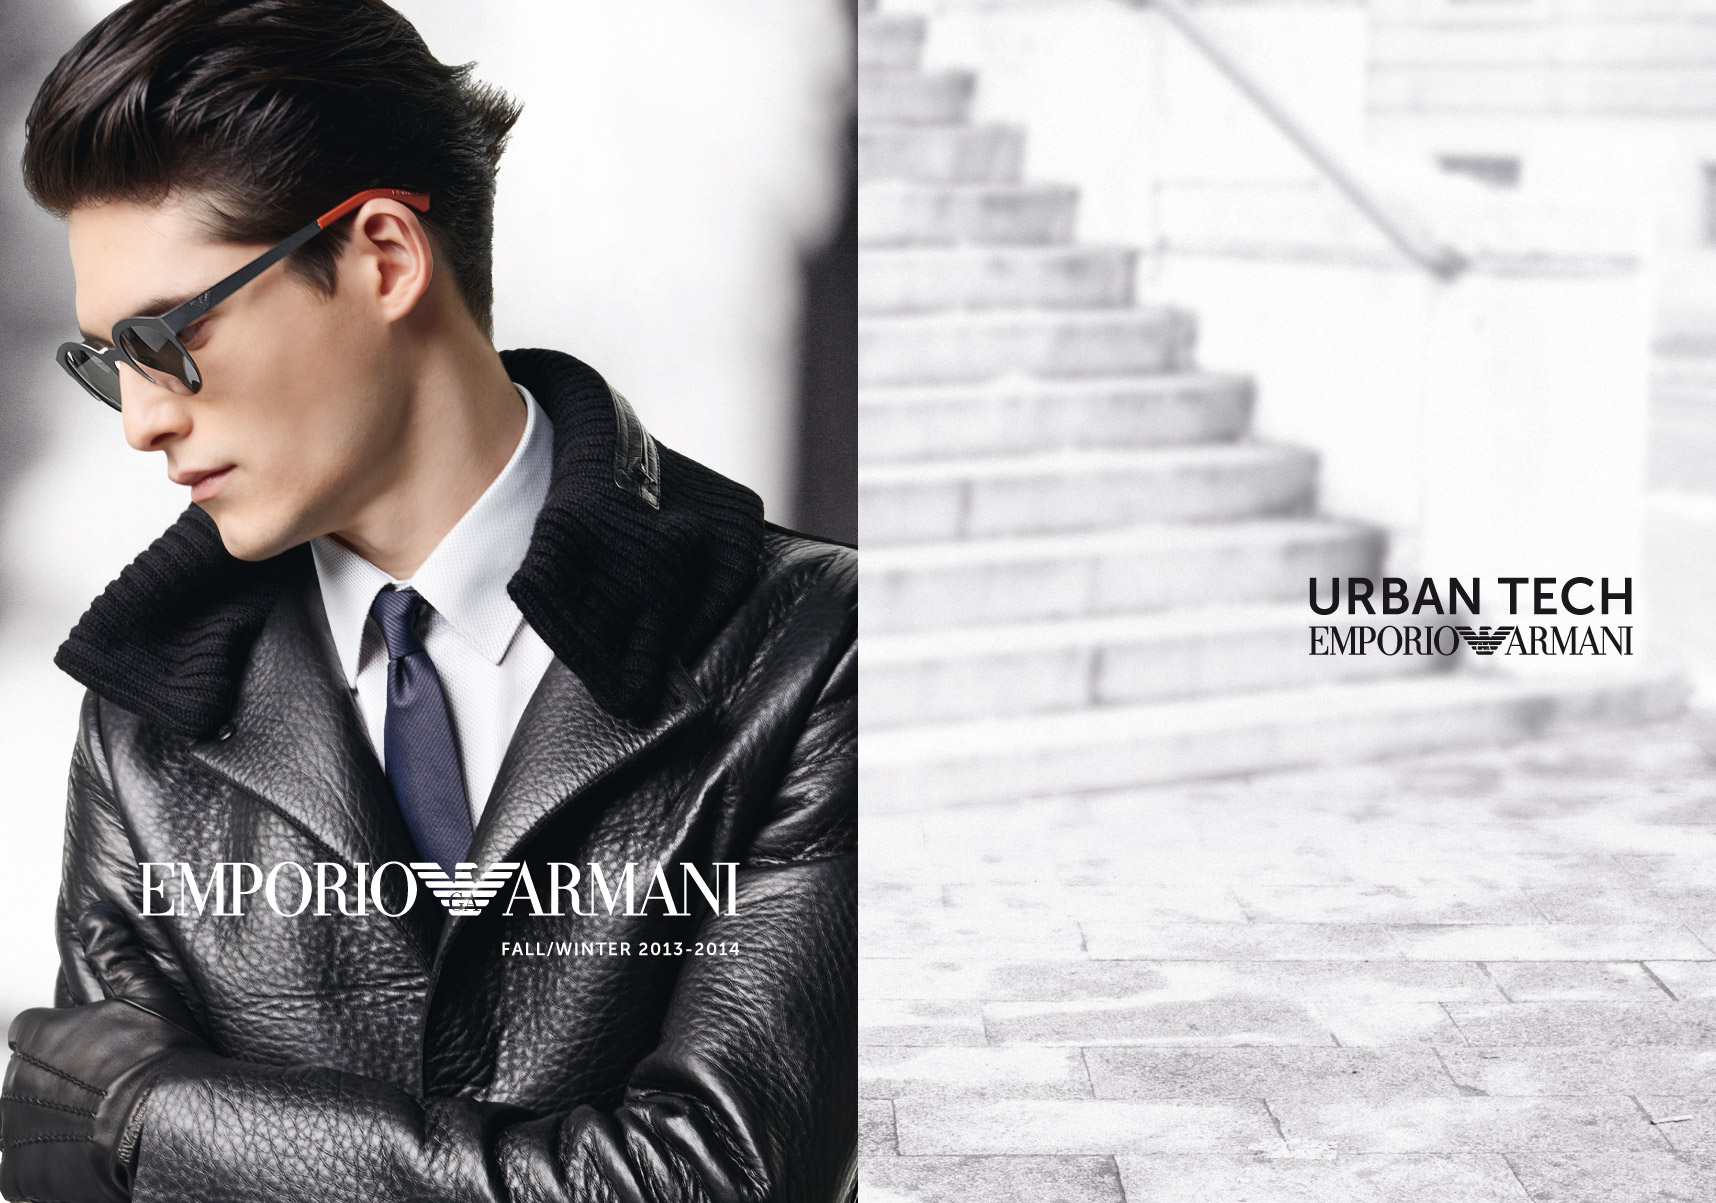 EMPORIO ARMANI Fall lookbook for men 2013